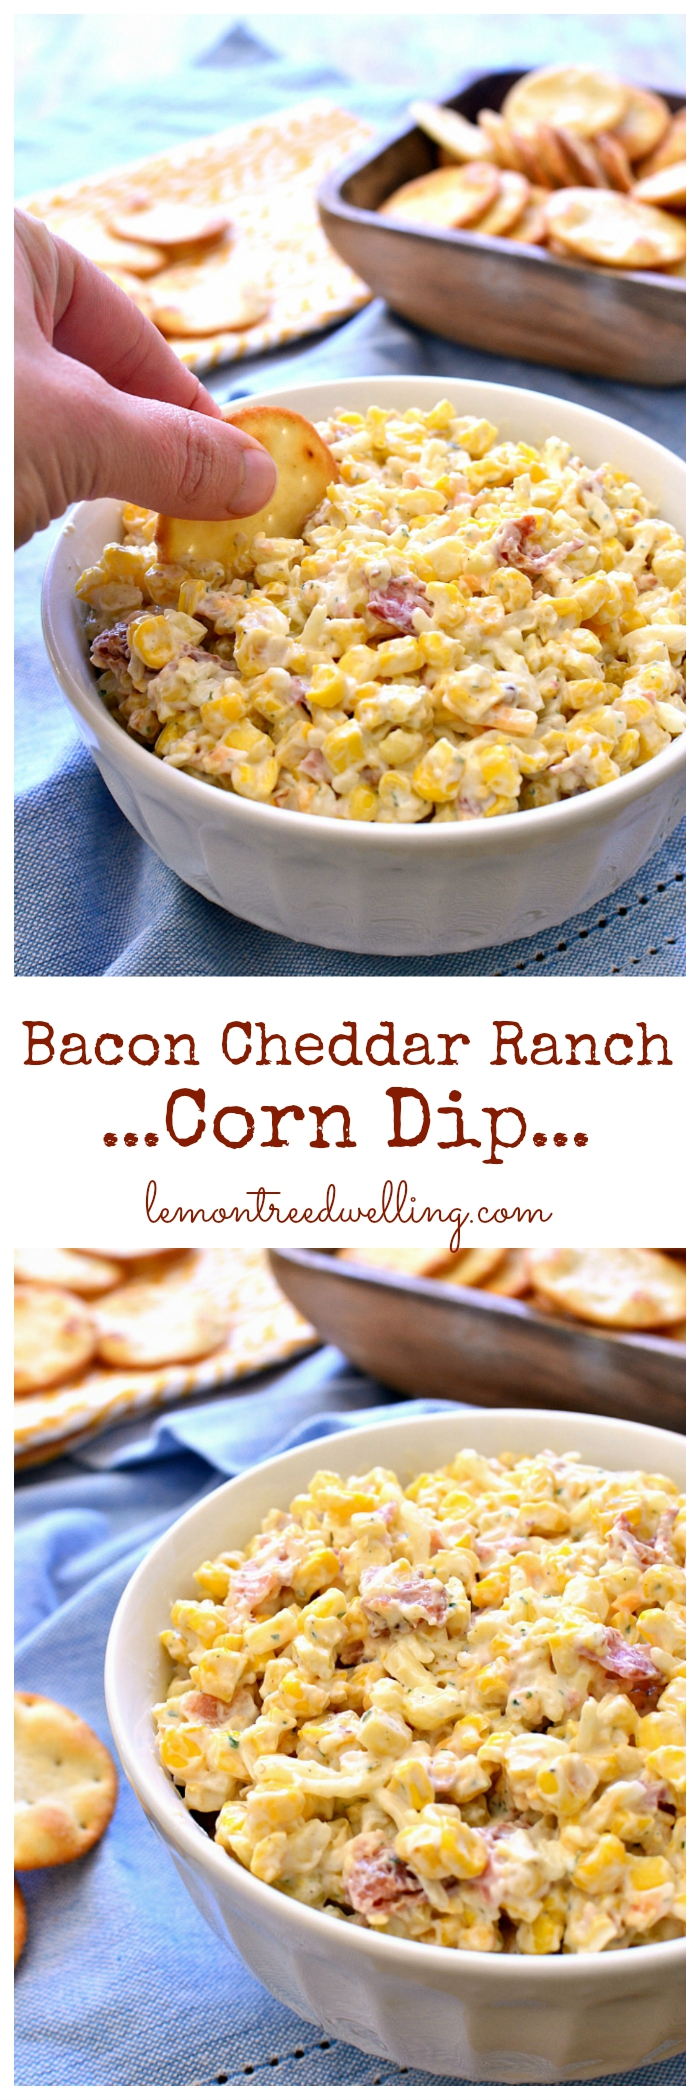 This Bacon Cheddar Ranch Corn Dip is made with just 5 ...